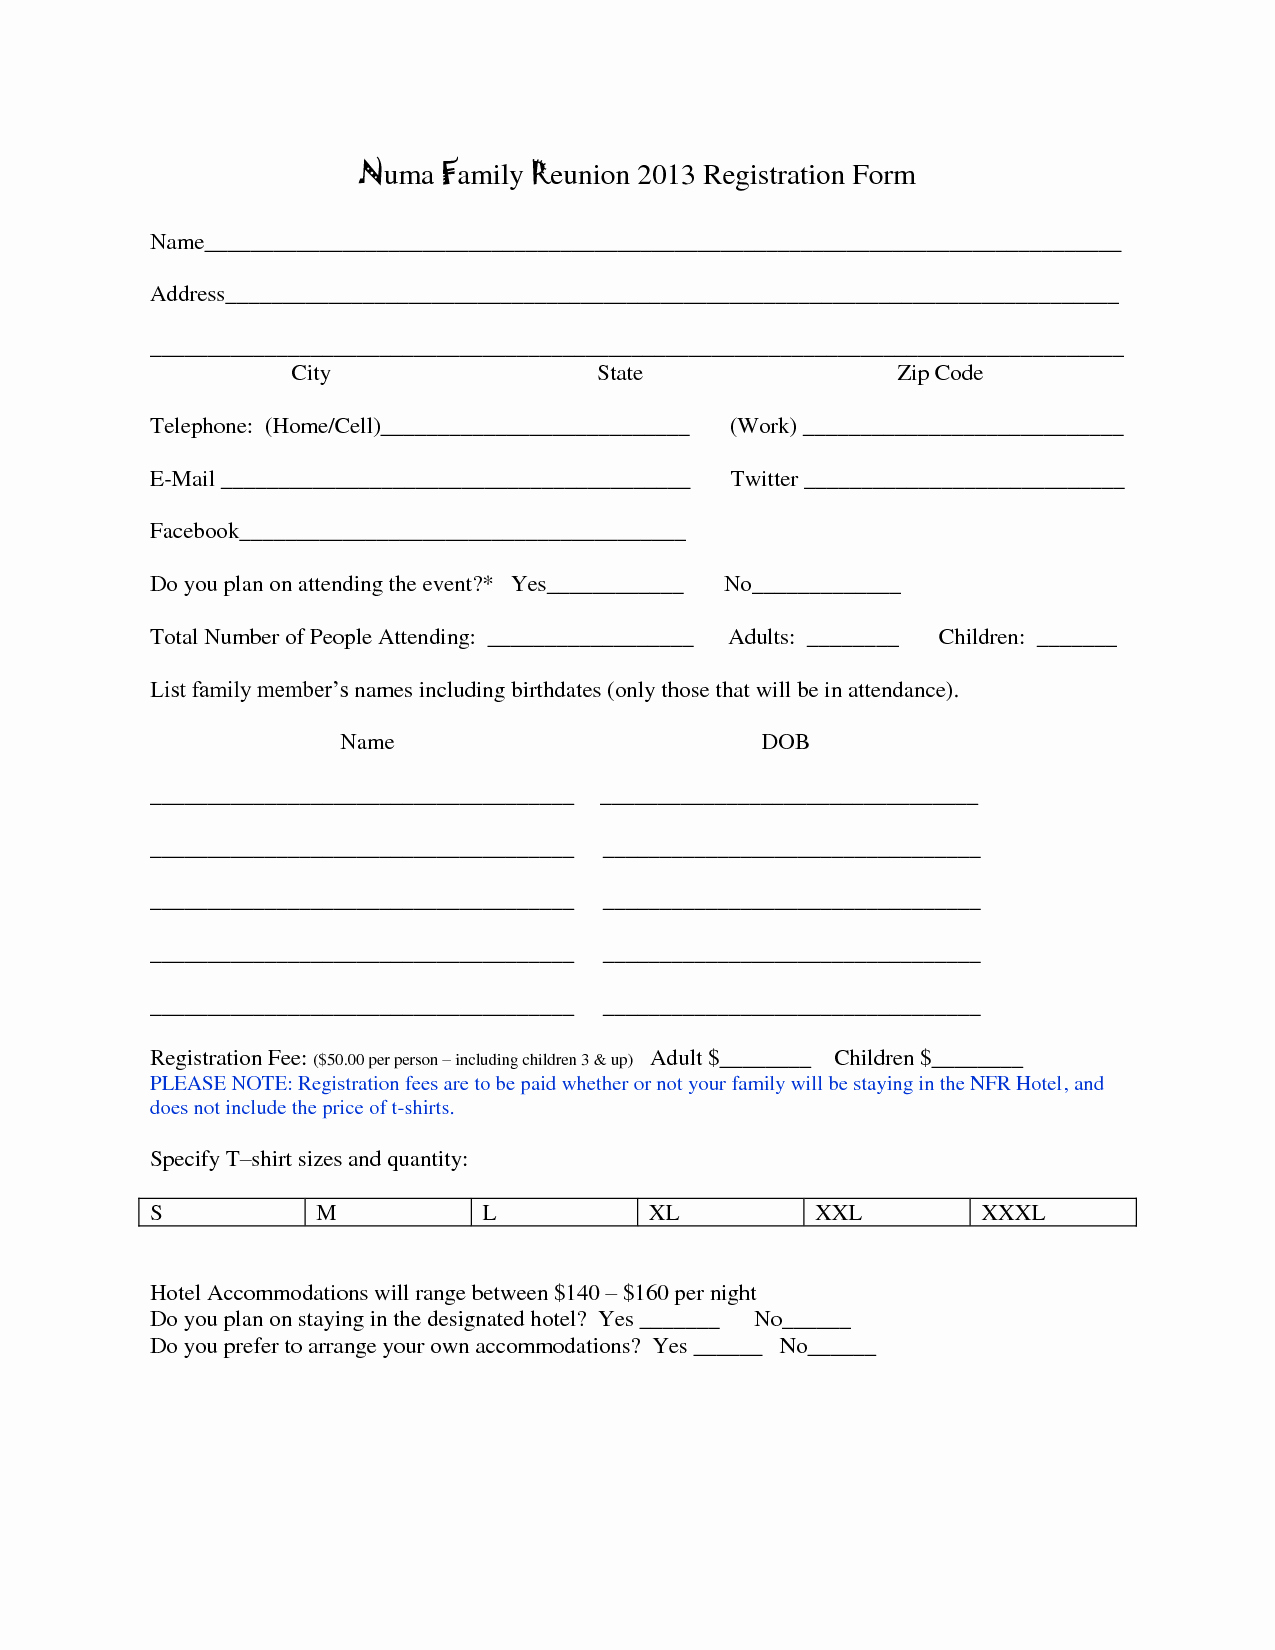 Printable Registration form Template New 7 Best Of Family Reunion forms Printable Free